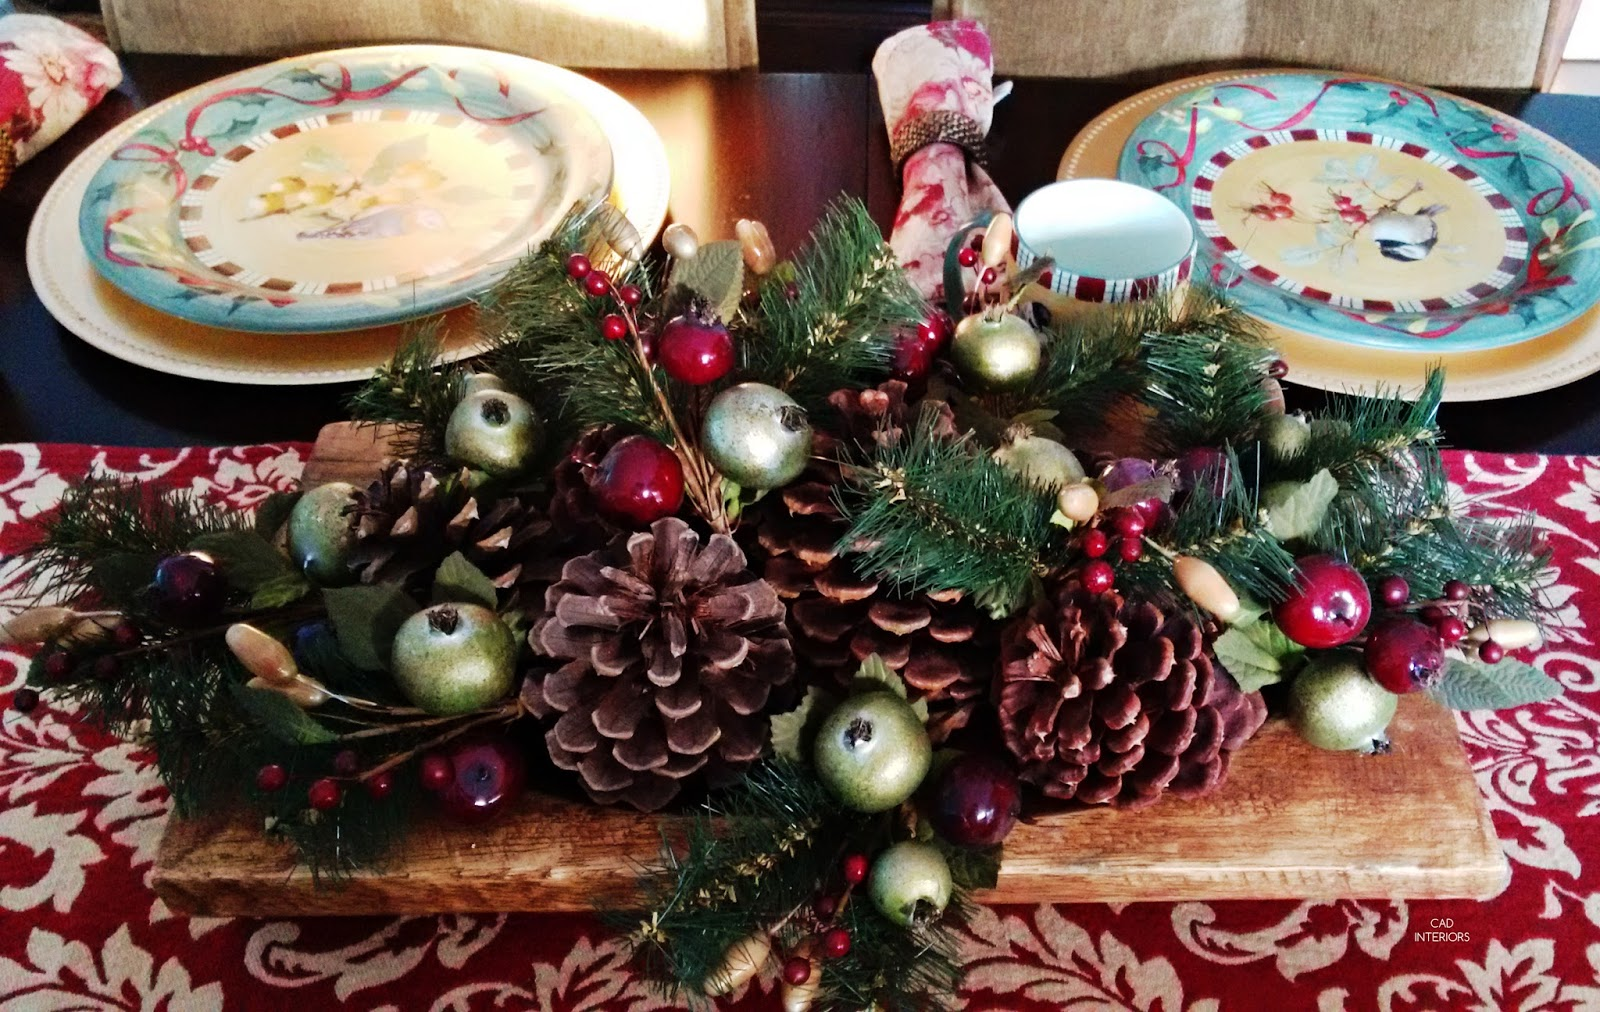 Christmas holiday decorating classic traditional rustic natural table setting decor